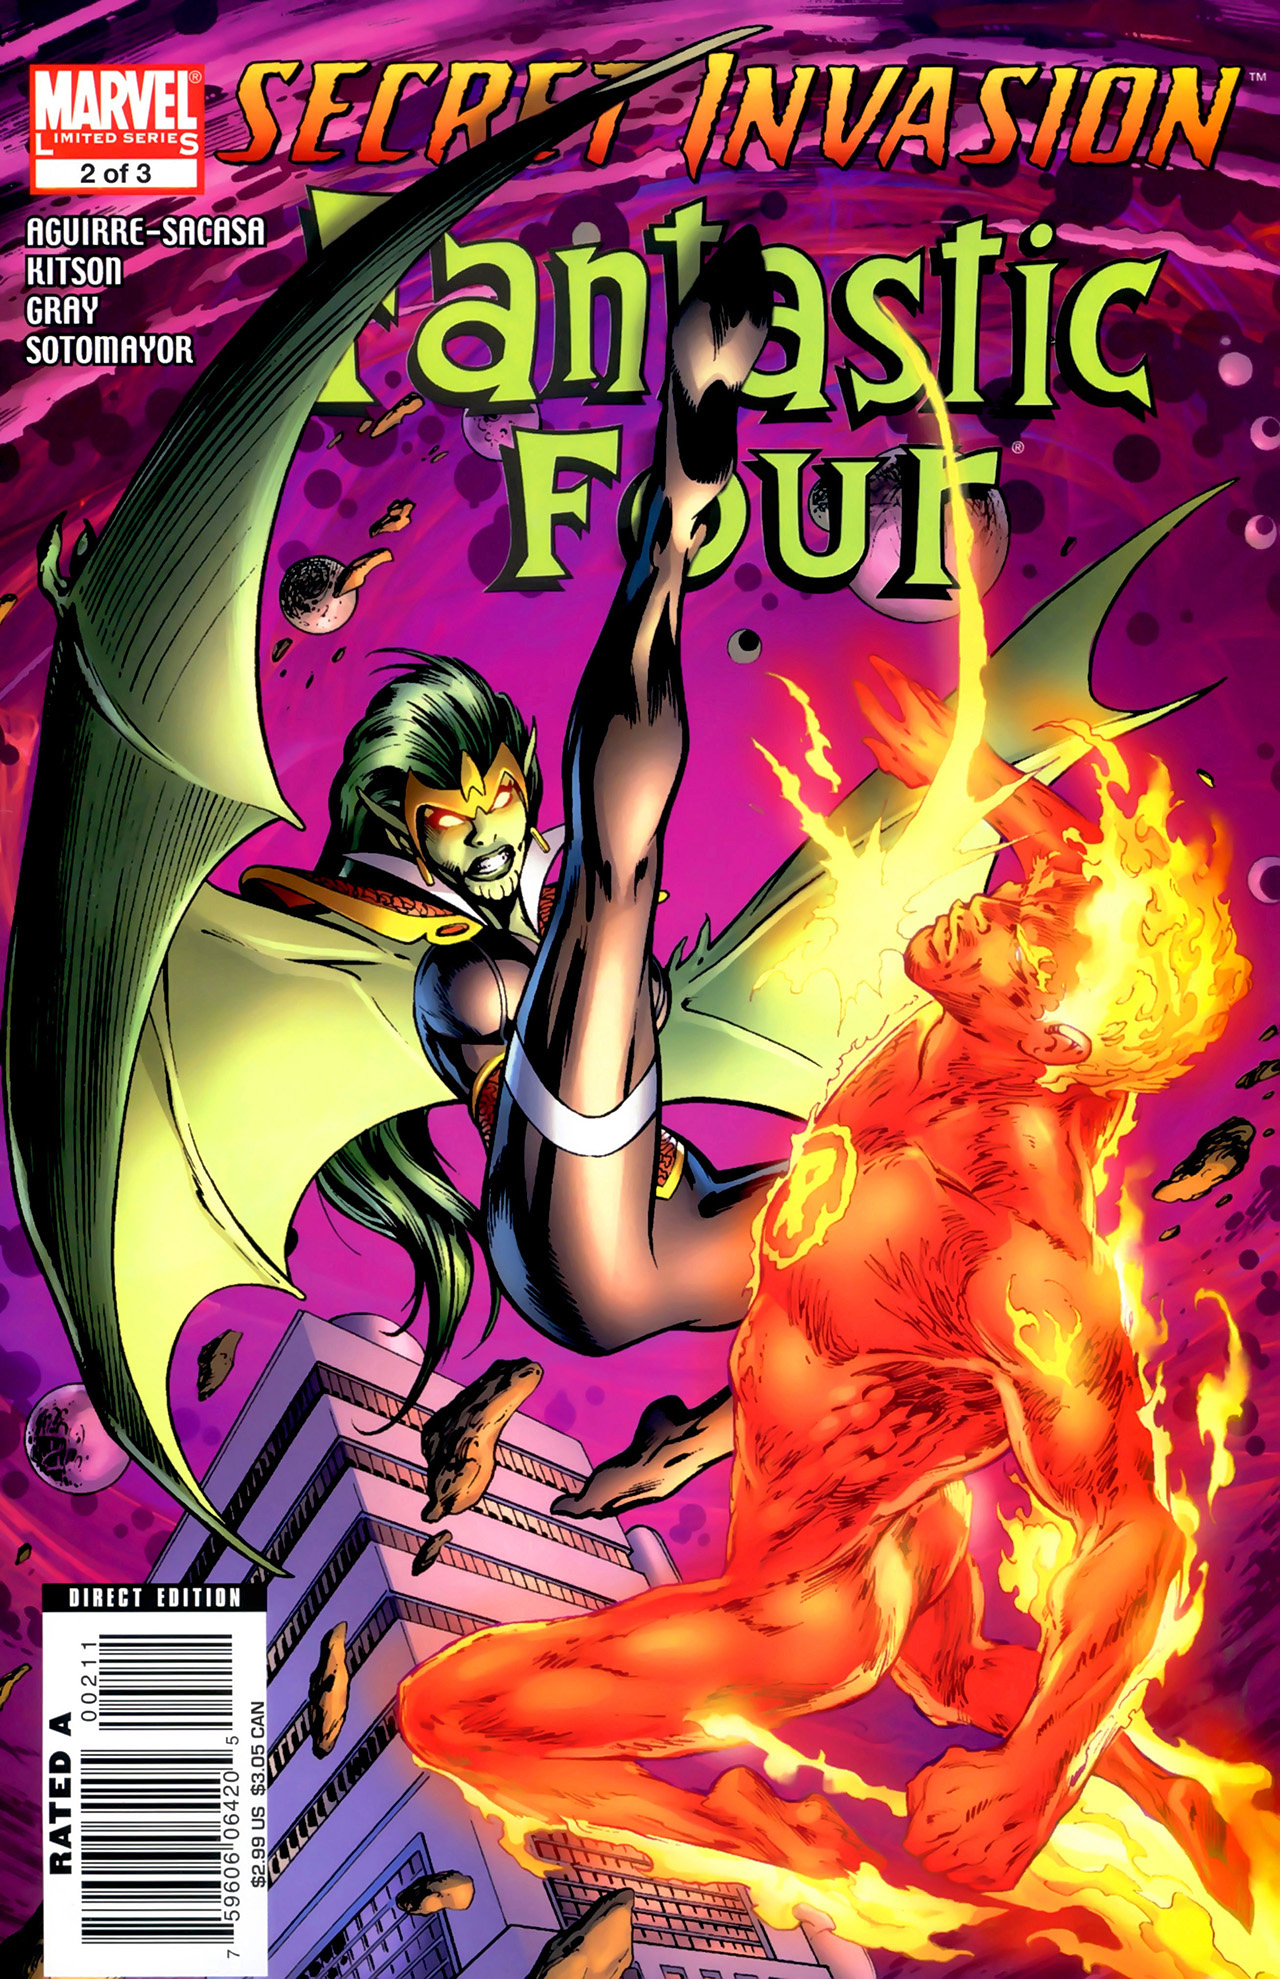 Secret Invasion: Fantastic Four Vol 1 2